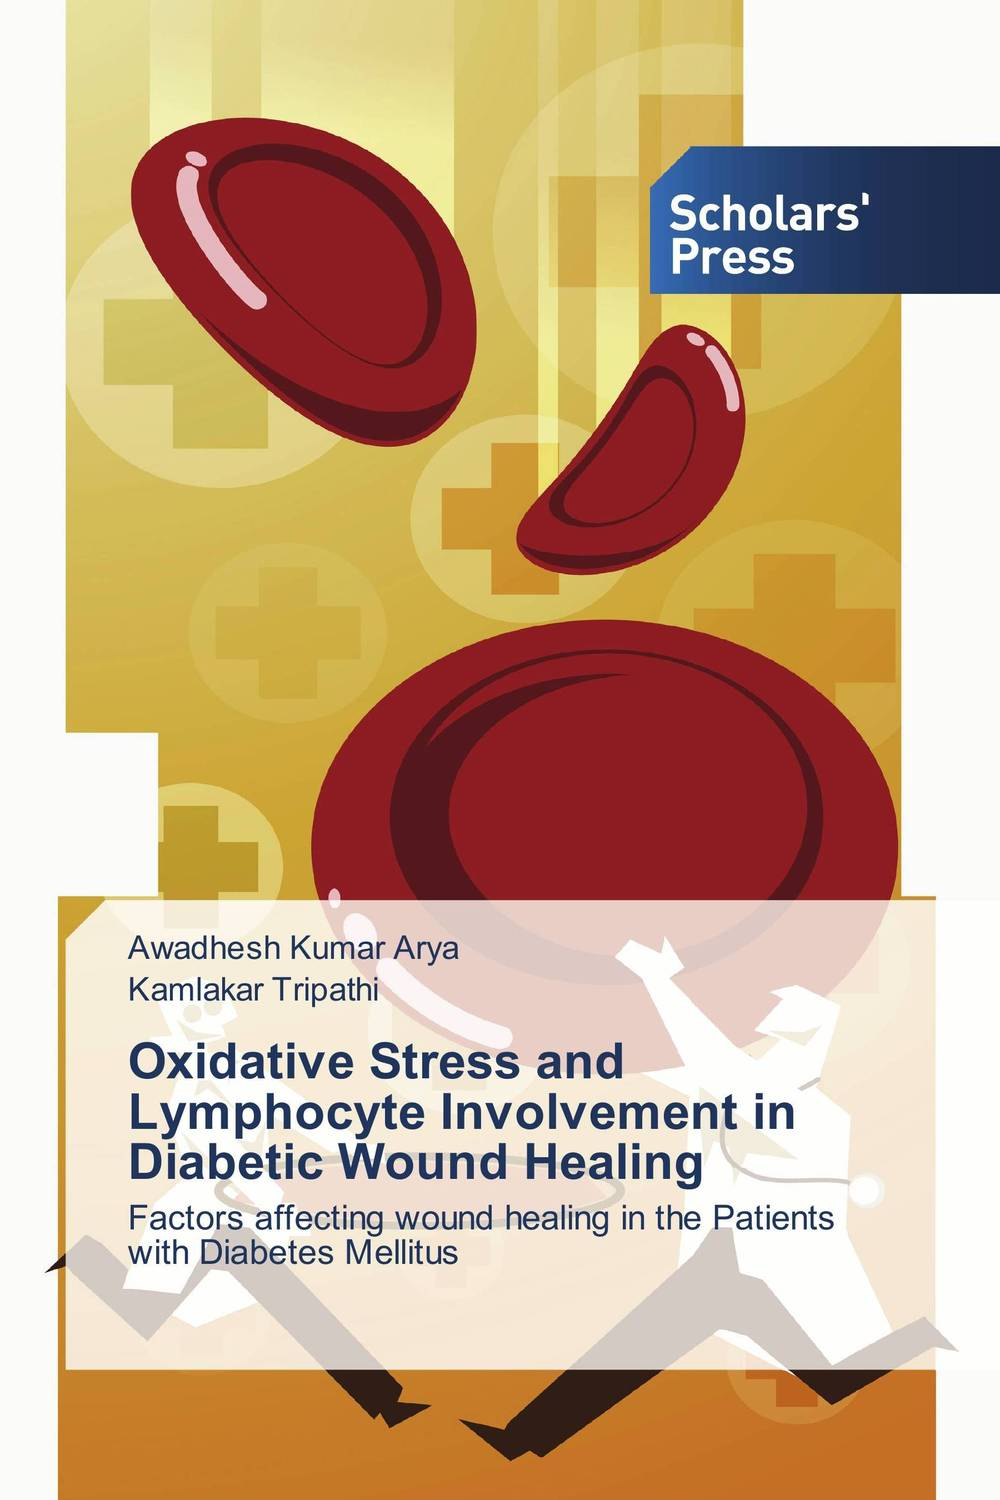 Oxidative Stress and Lymphocyte Involvement in Diabetic Wound Healing role of rosuvastatin in segmentalbone healing